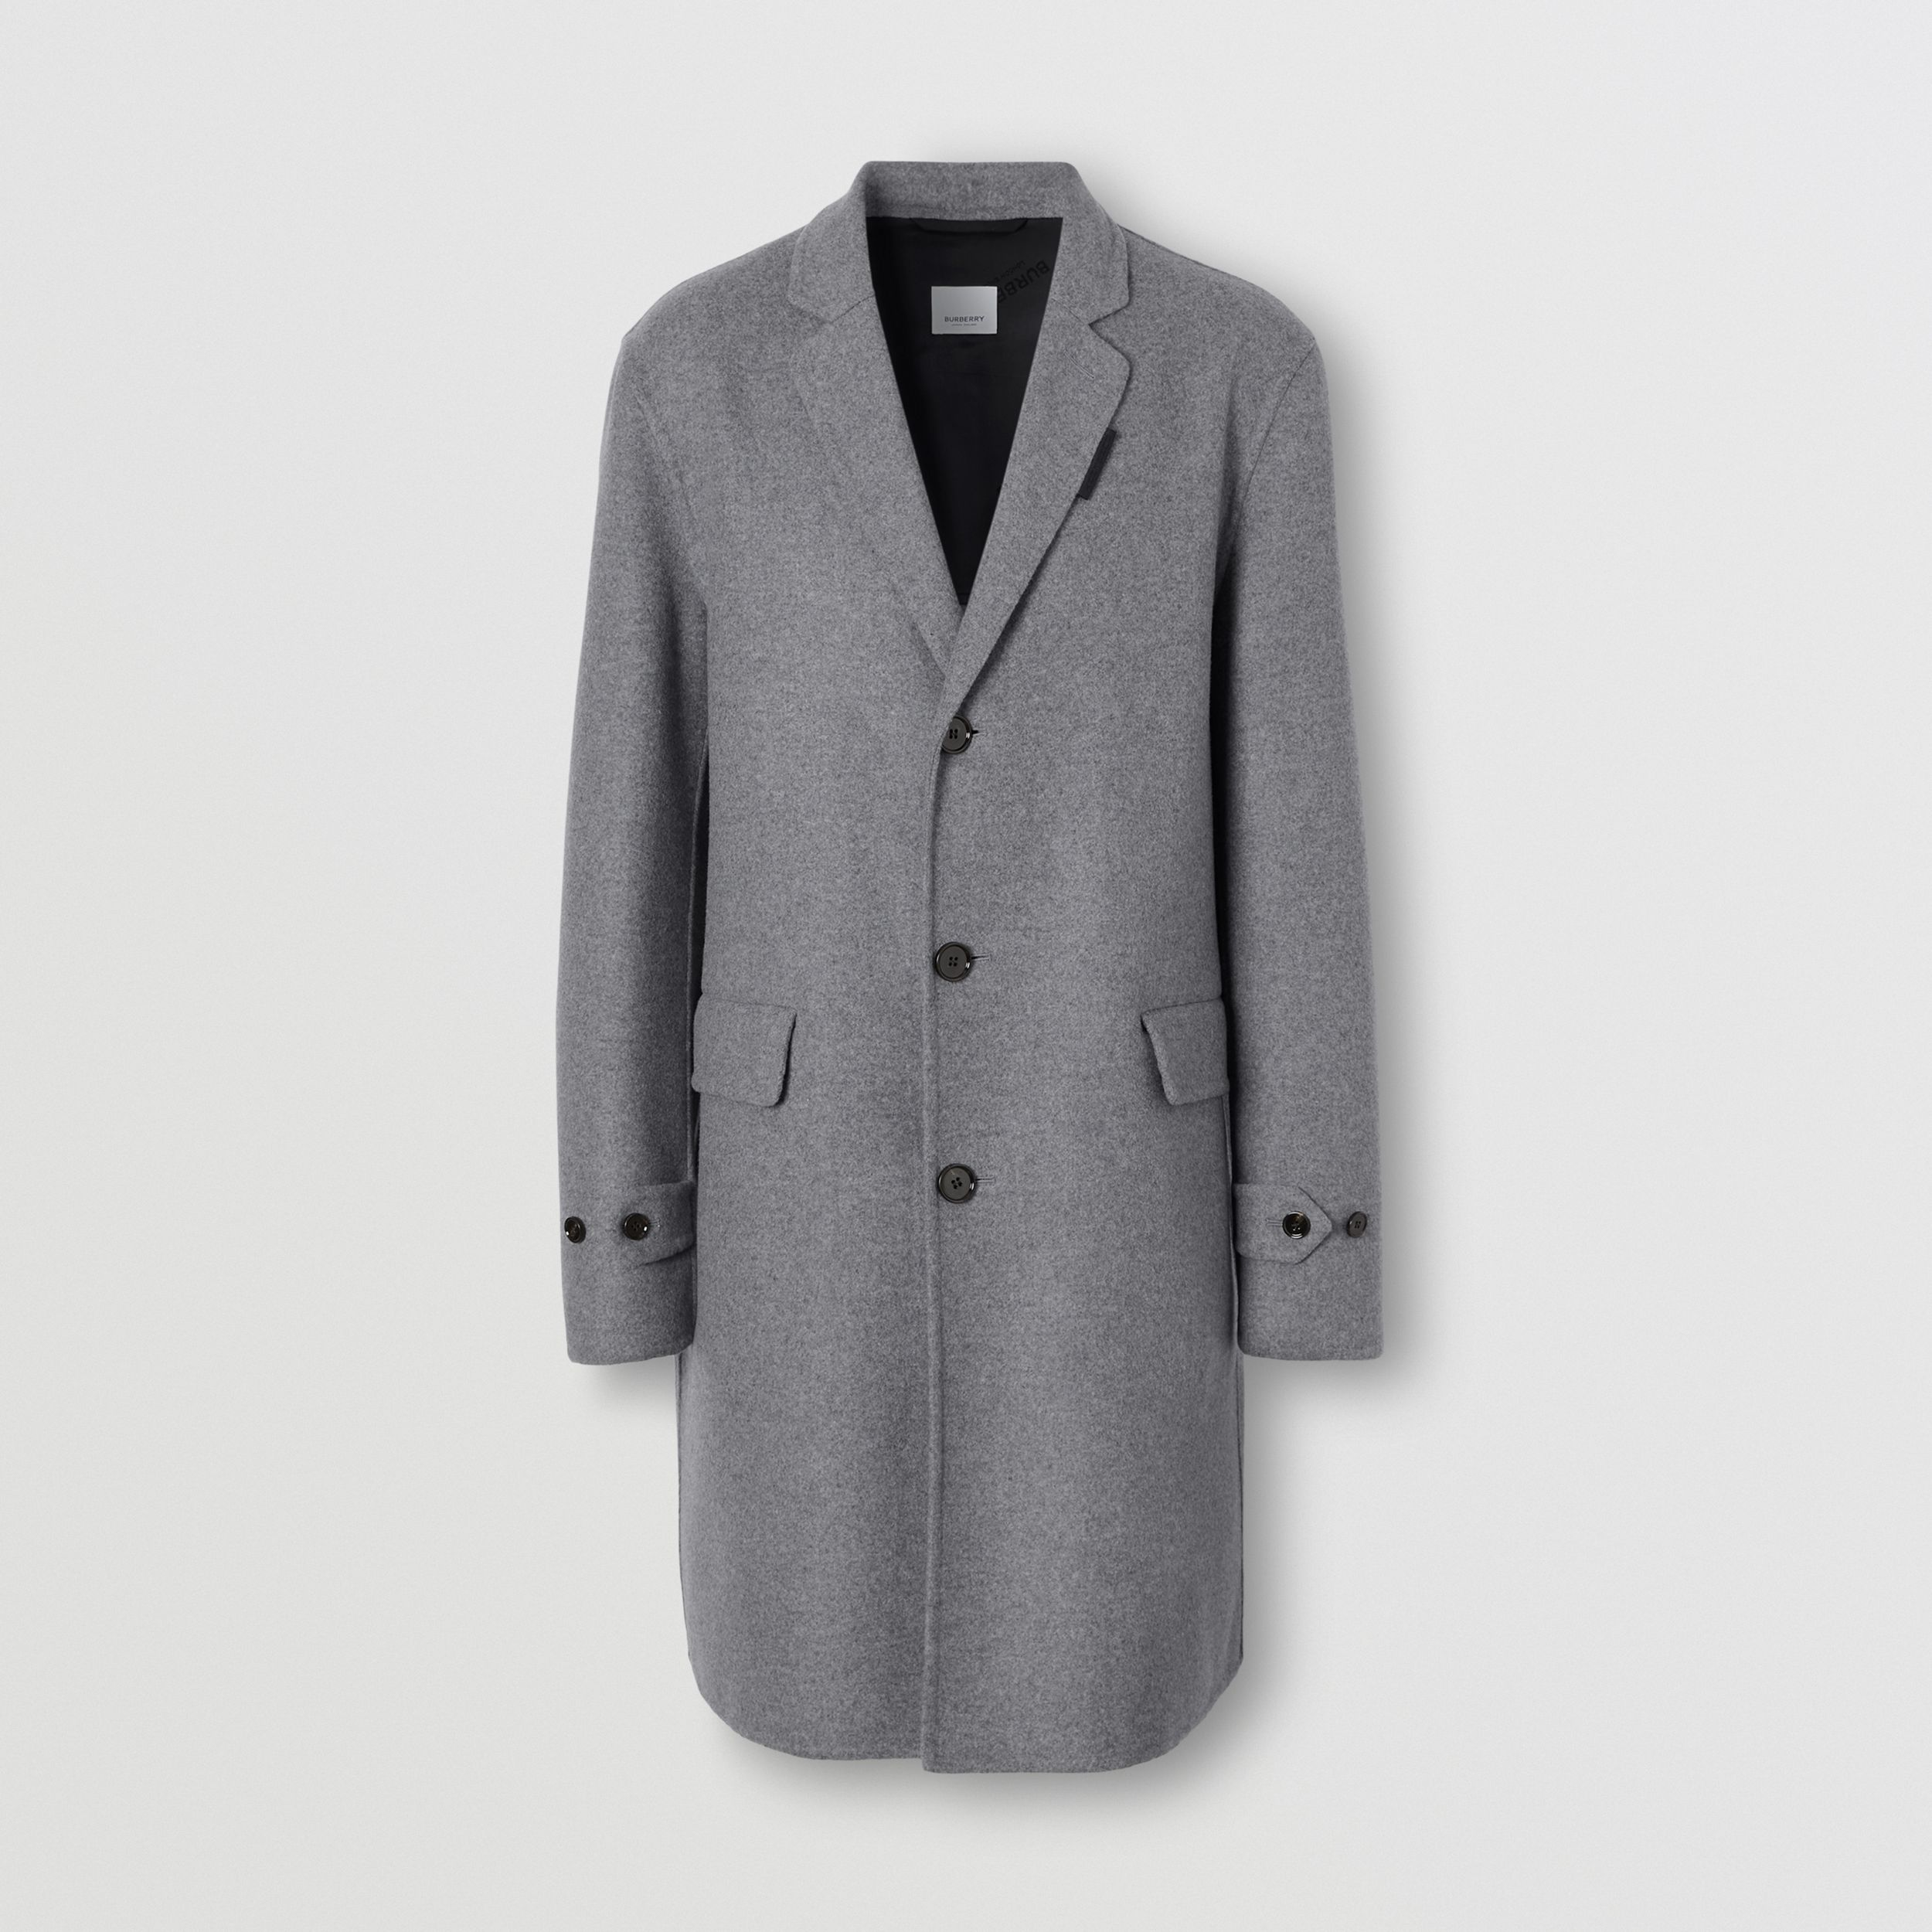 Wool Cashmere Lab Coat in Charcoal - Men | Burberry - 4